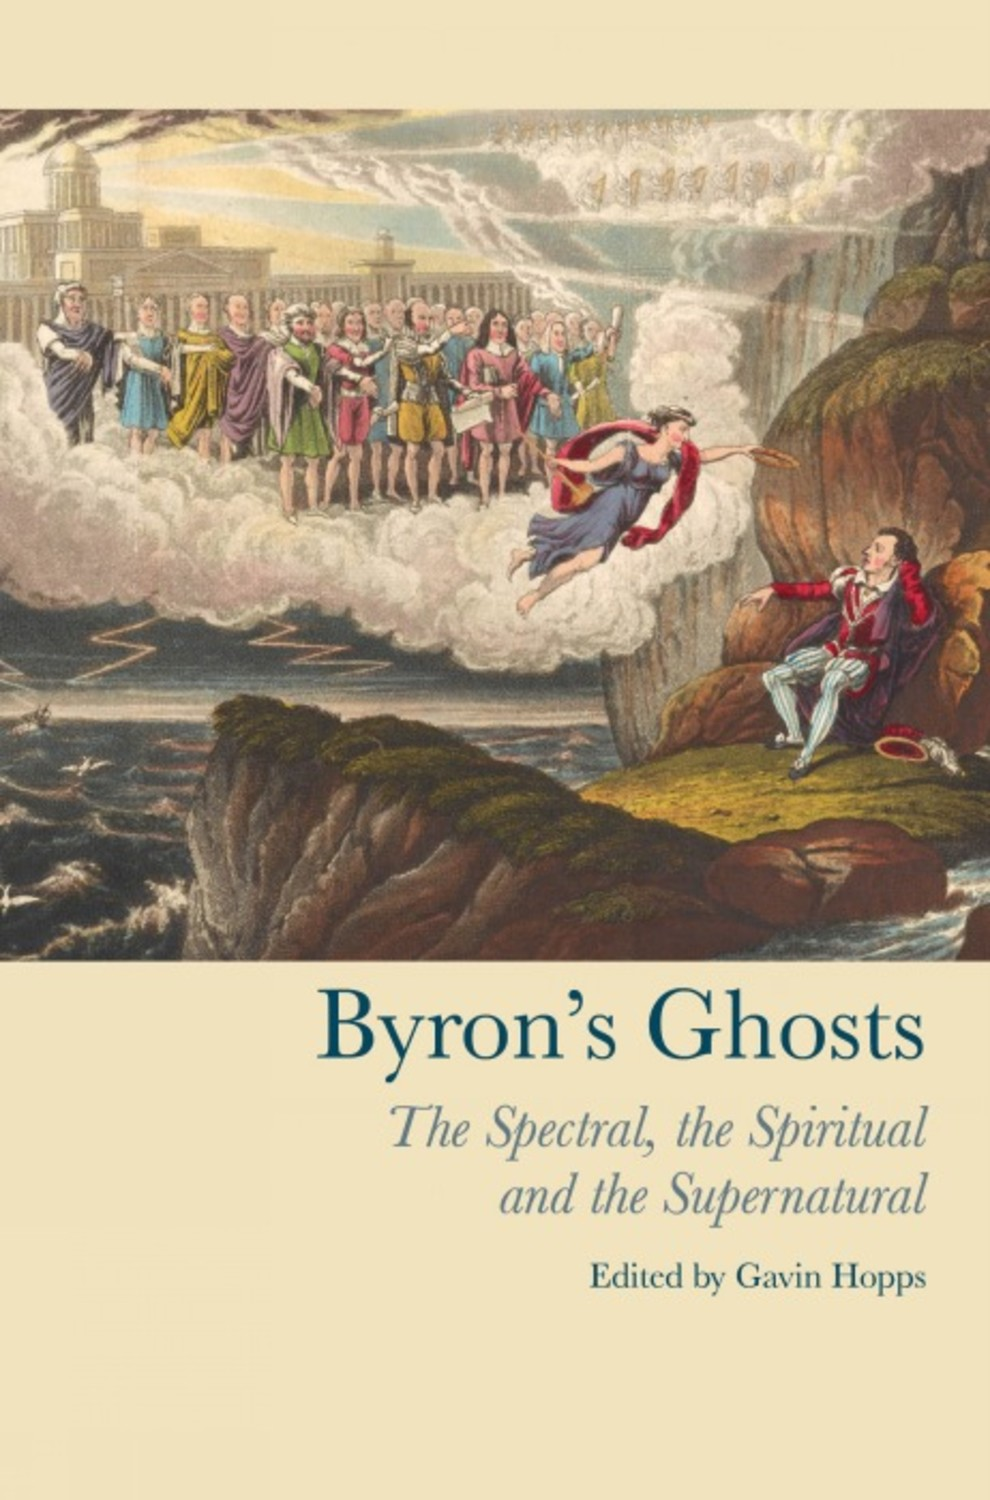 Byron's Ghosts